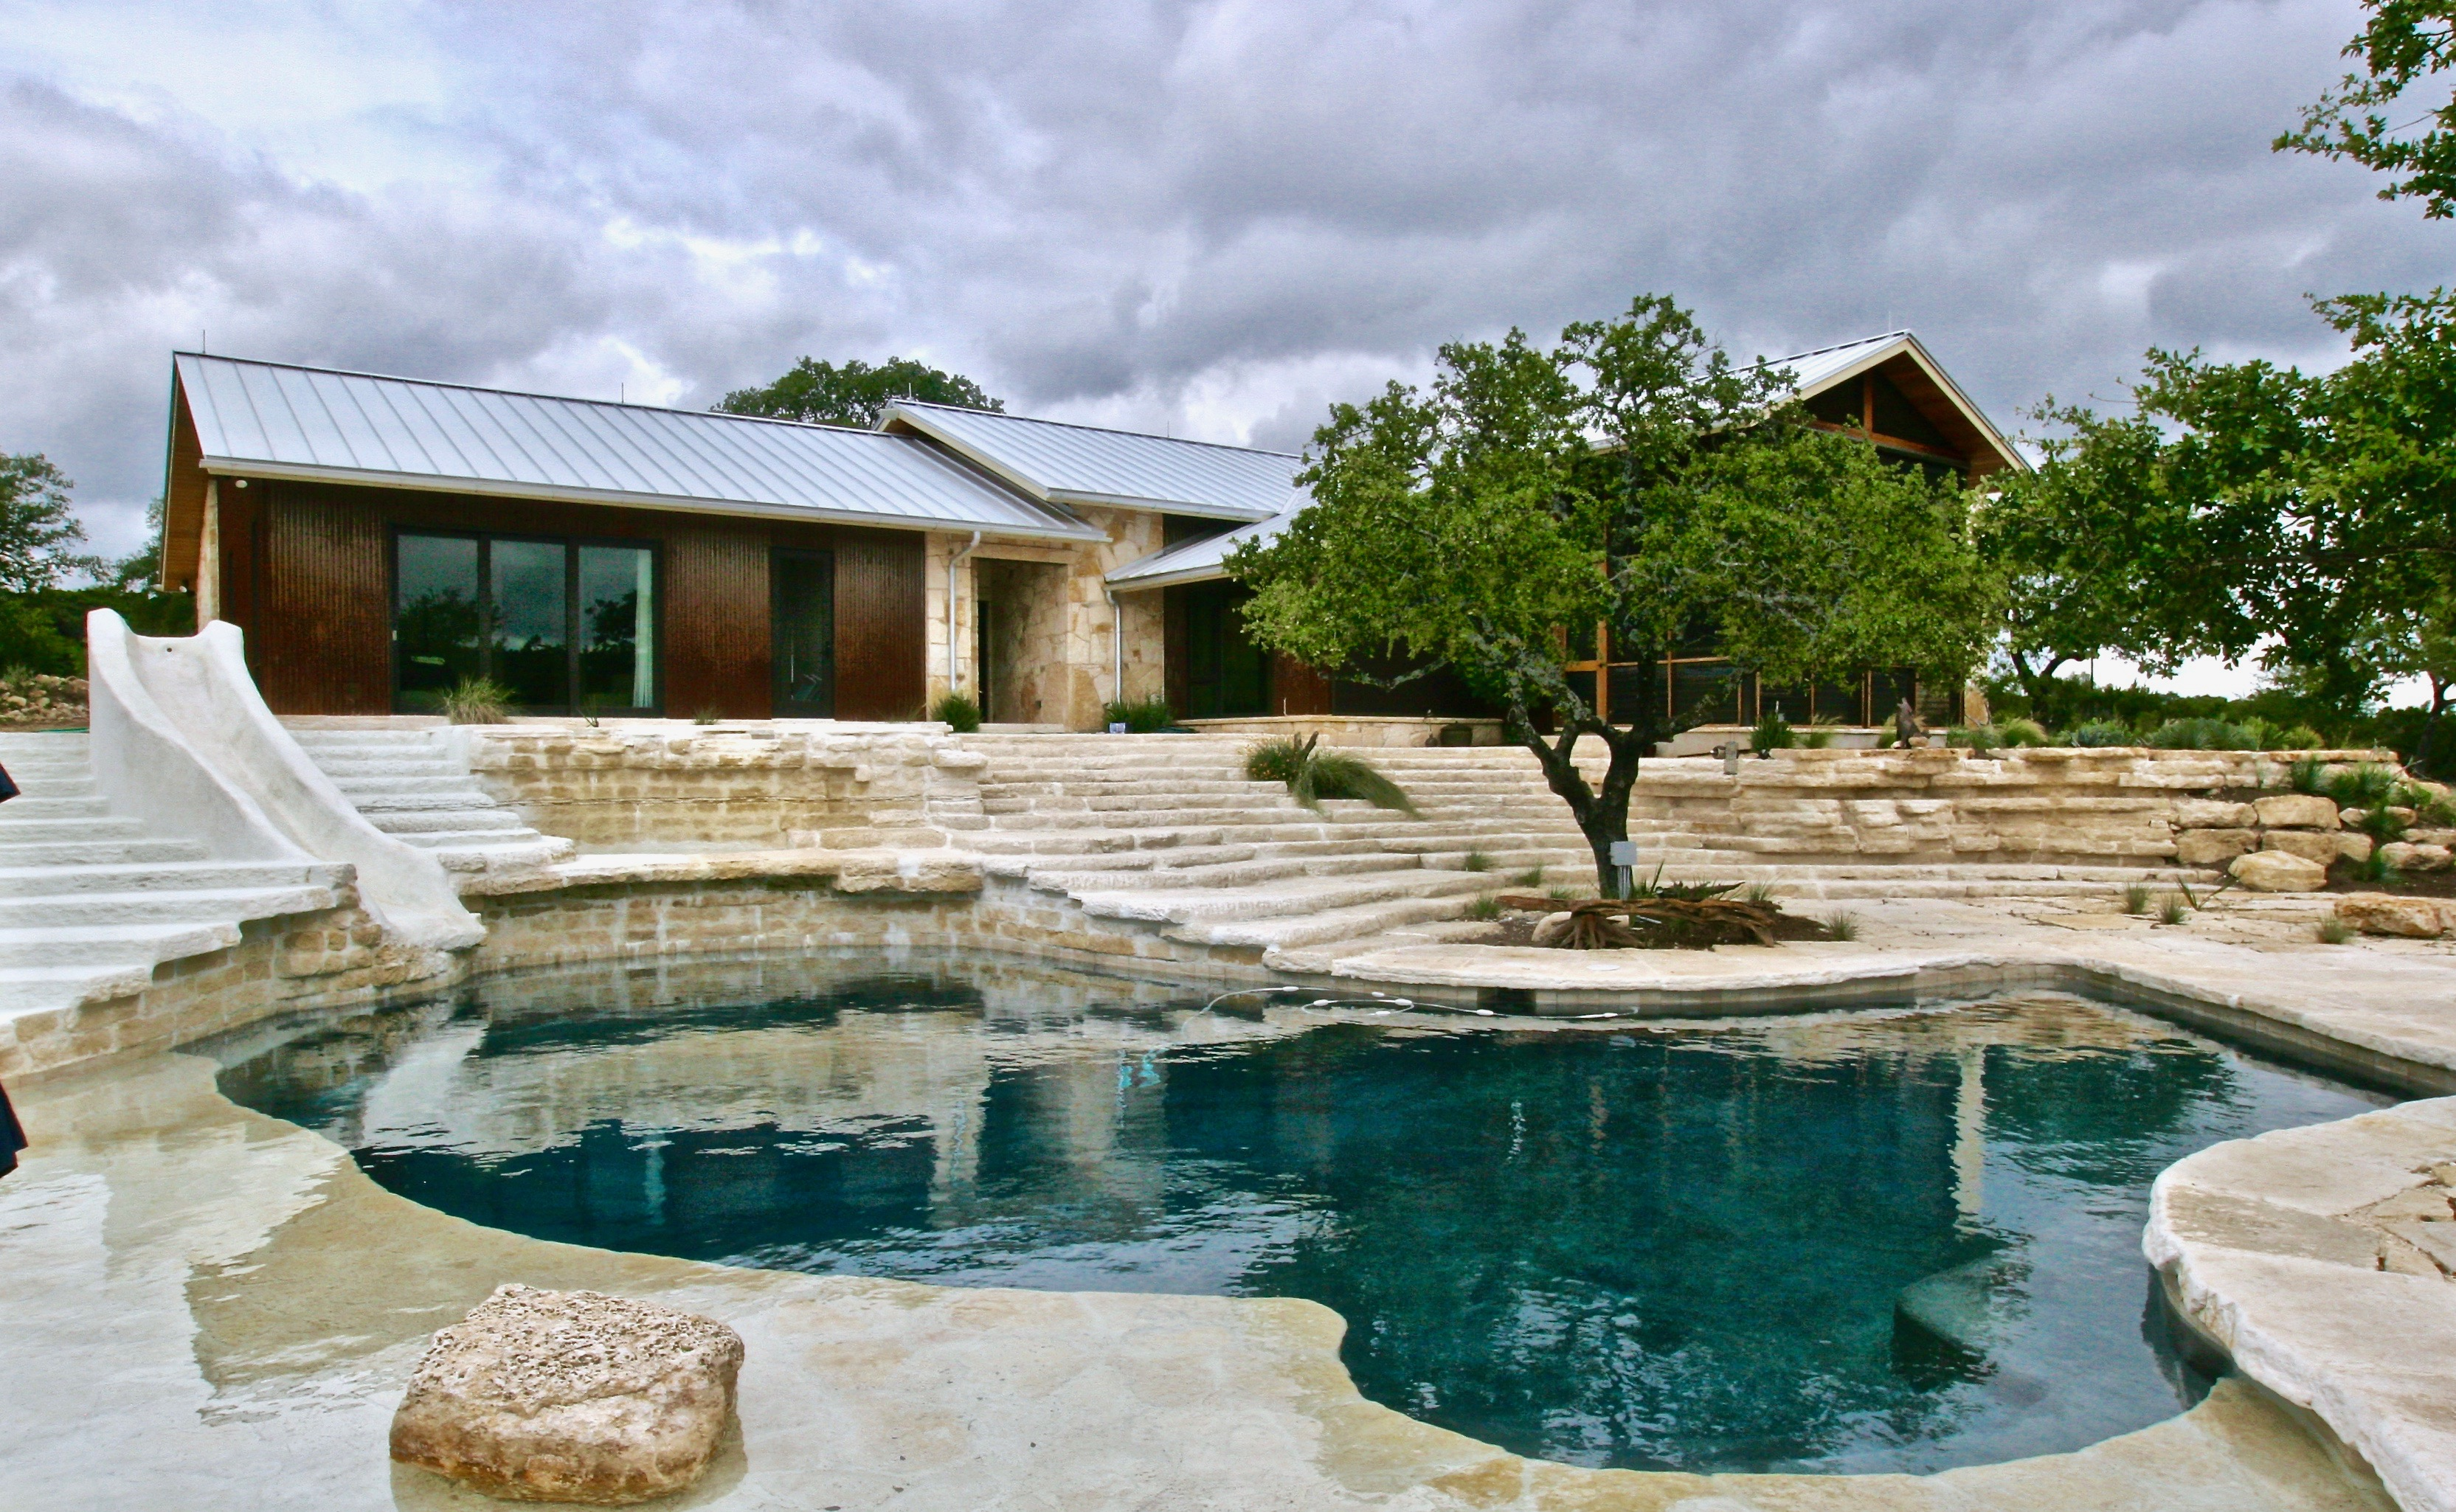 OliverCustomHomes Hamilton Pool Home